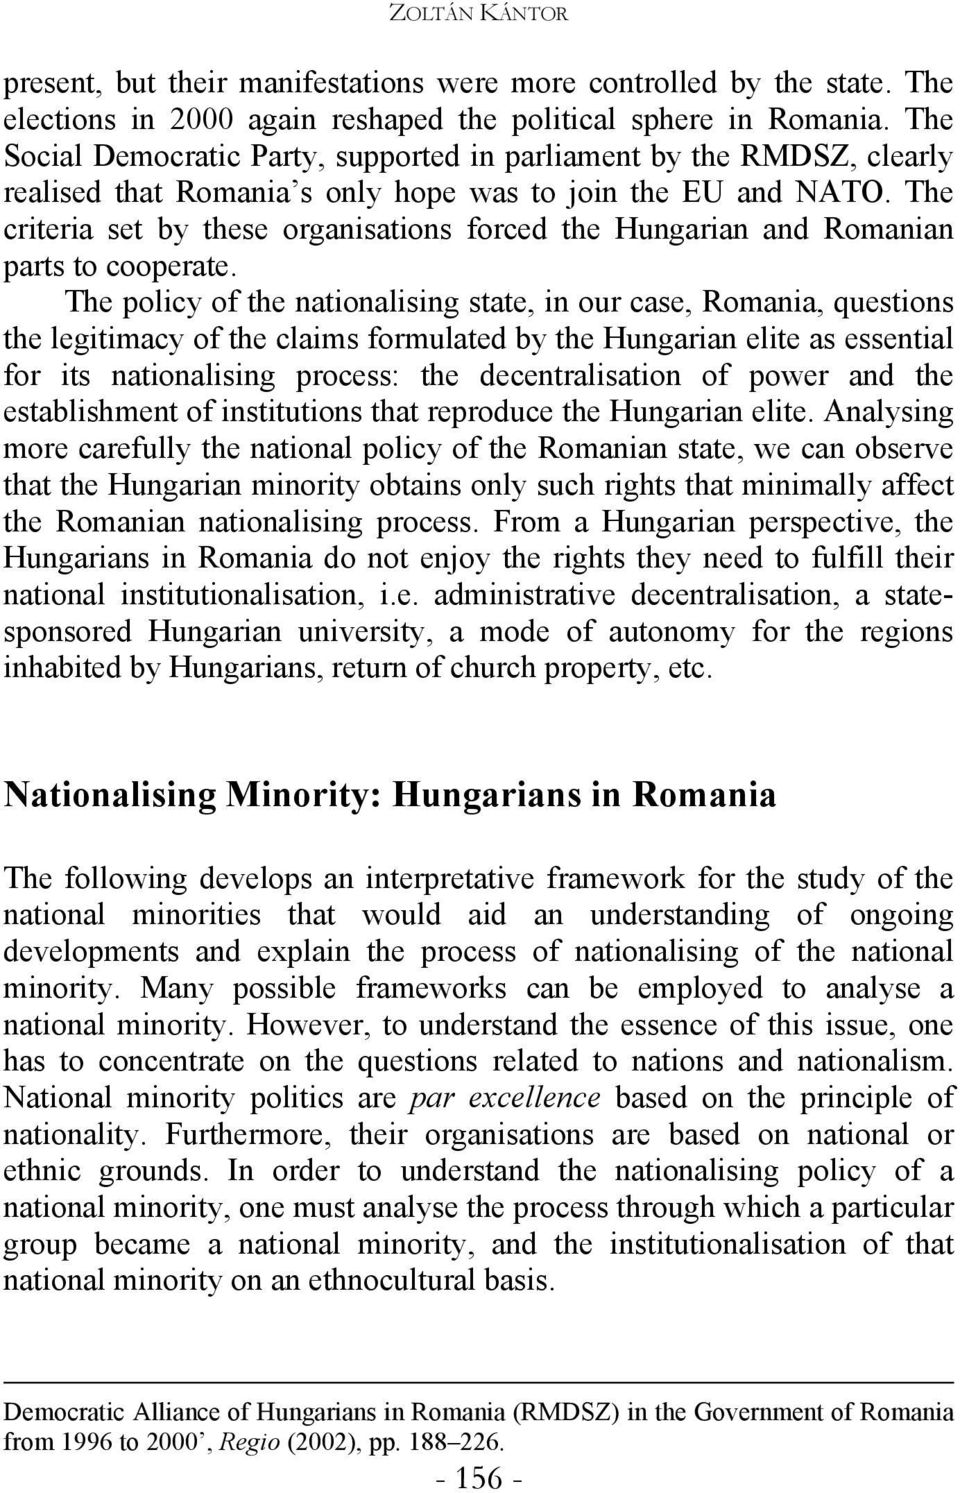 The criteria set by these organisations forced the Hungarian and Romanian parts to cooperate.